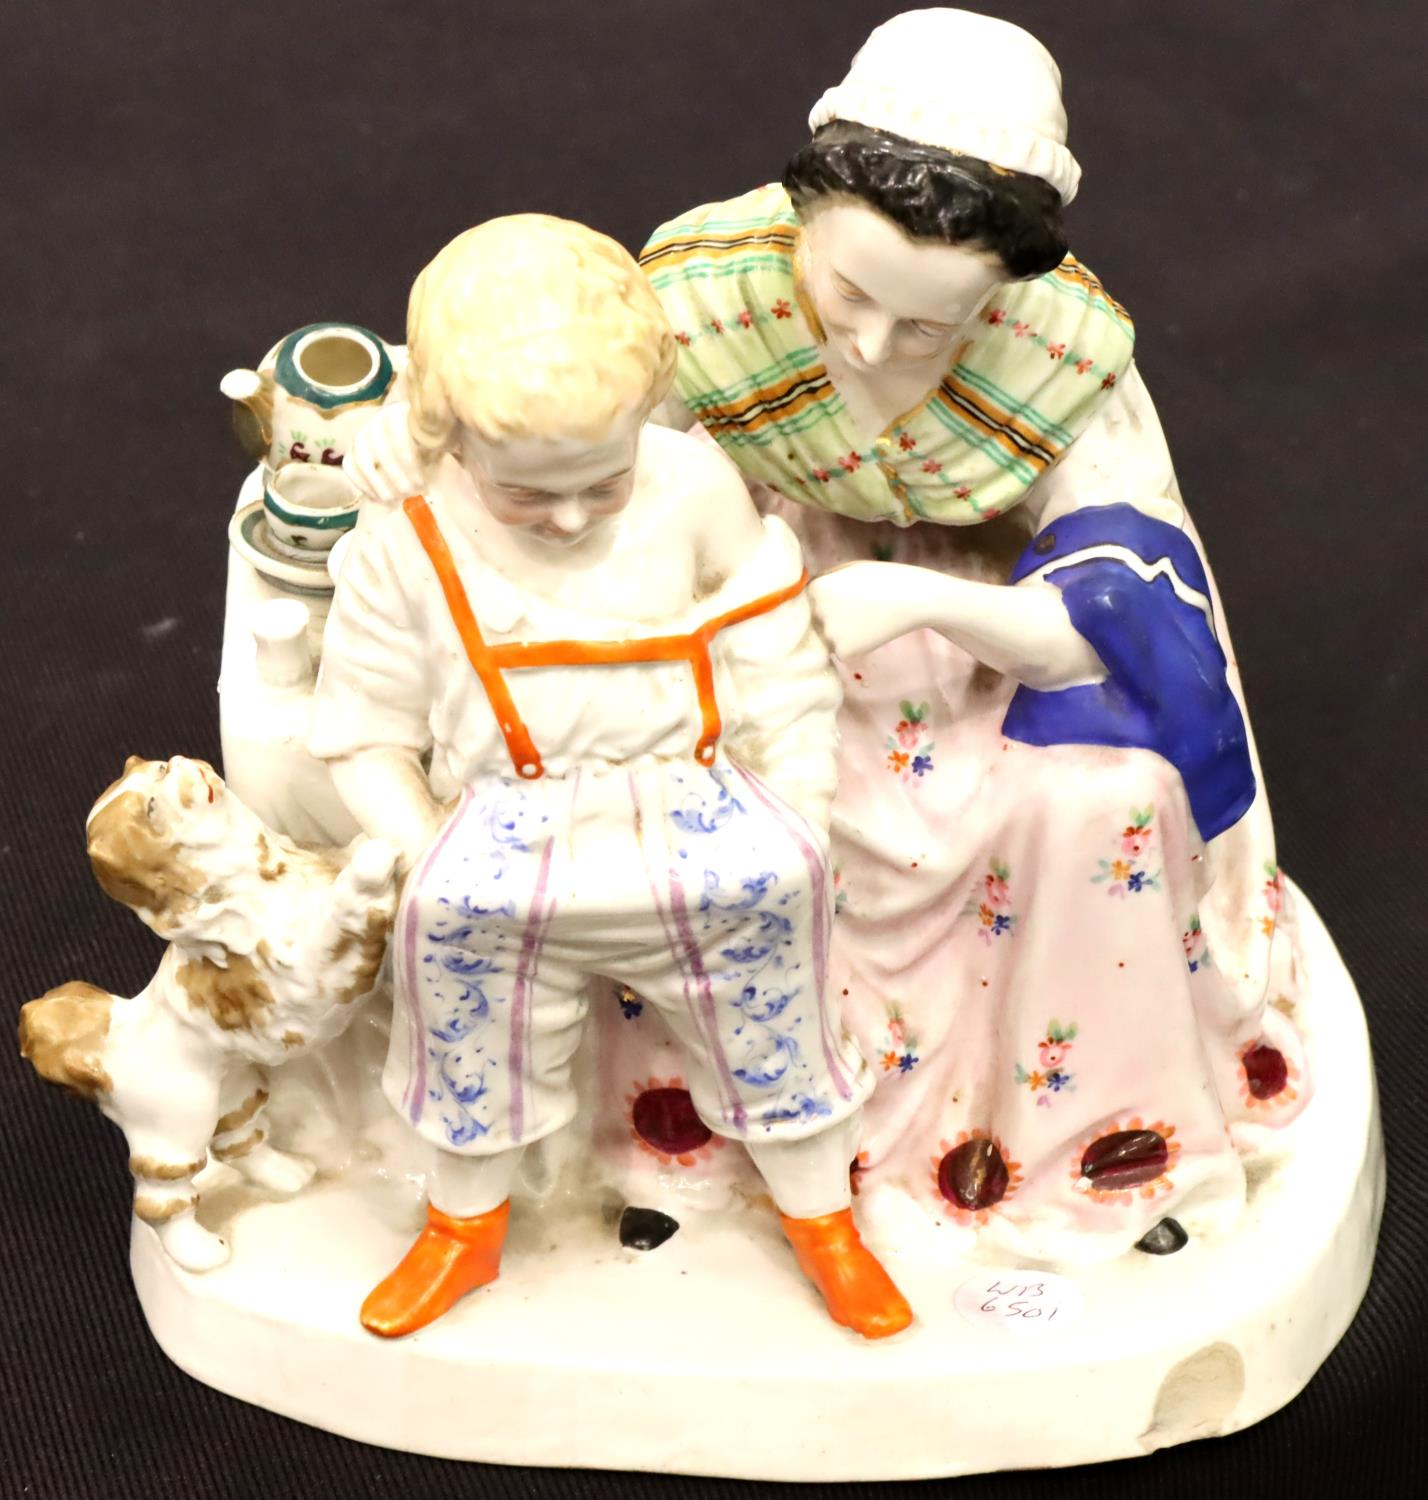 Continental woman and boy figurine, H: 21 cm. P&P Group 2 (£18+VAT for the first lot and £3+VAT